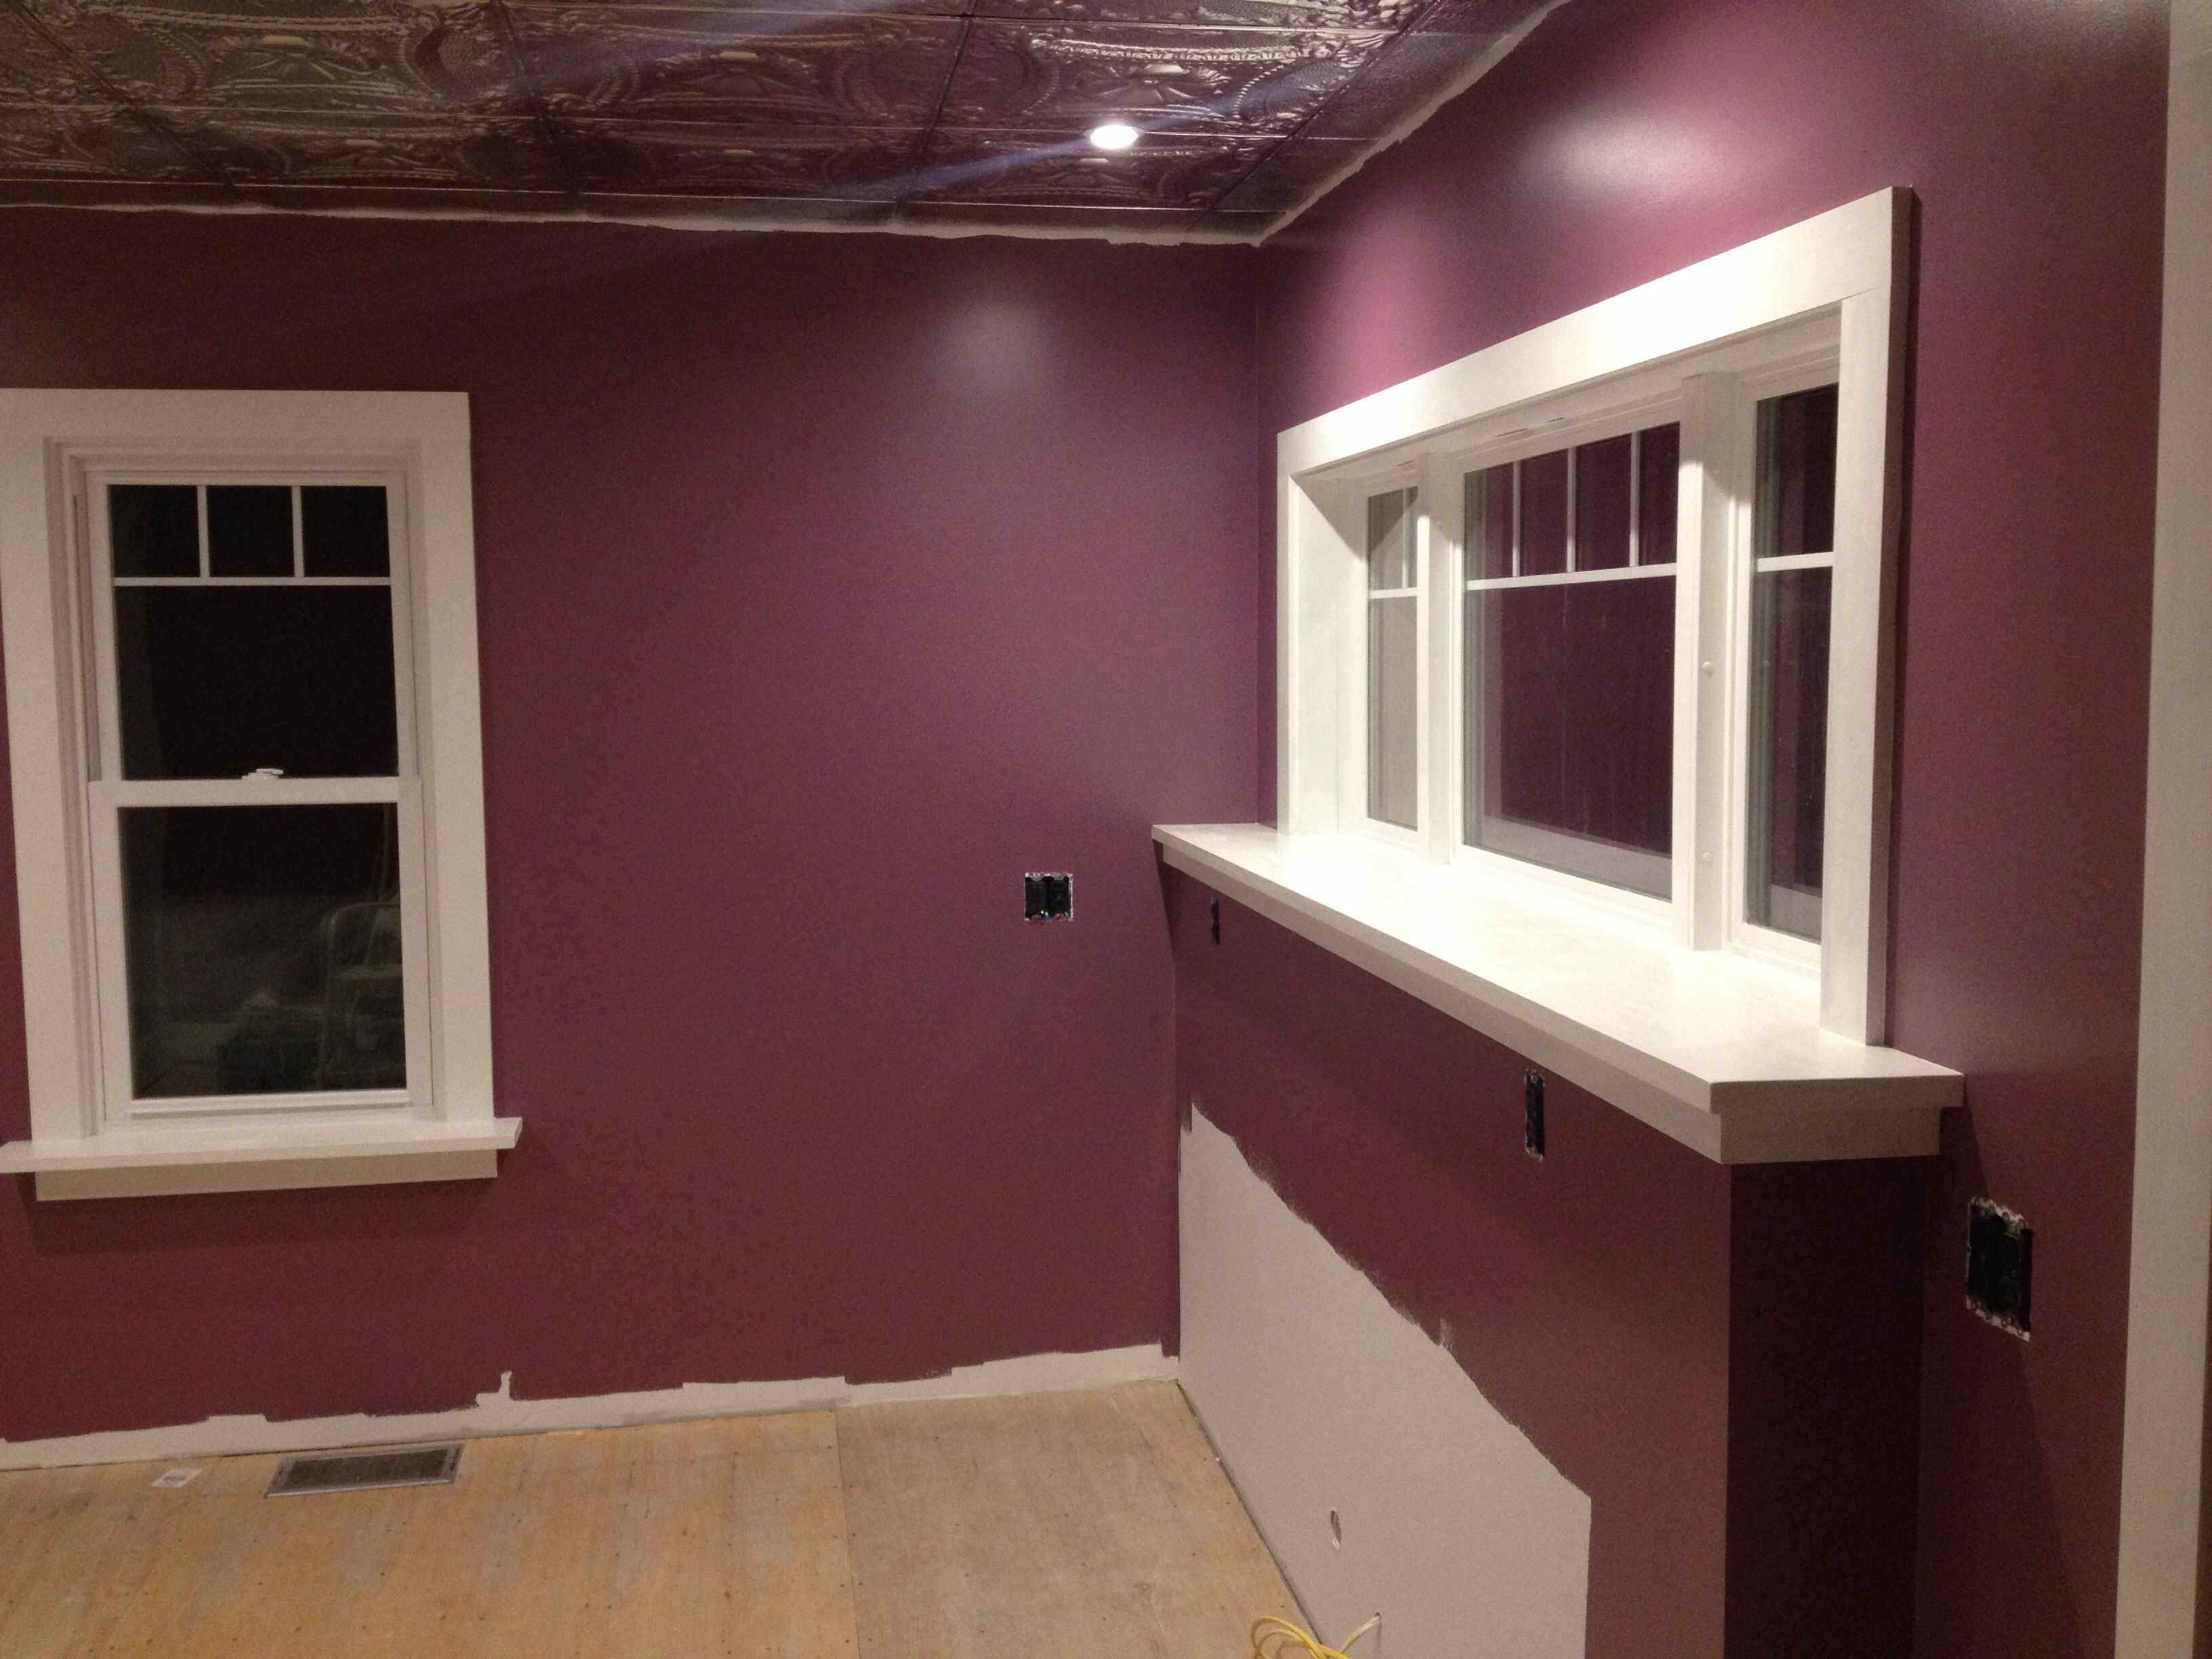 Sherwin Williams Plum Dandy